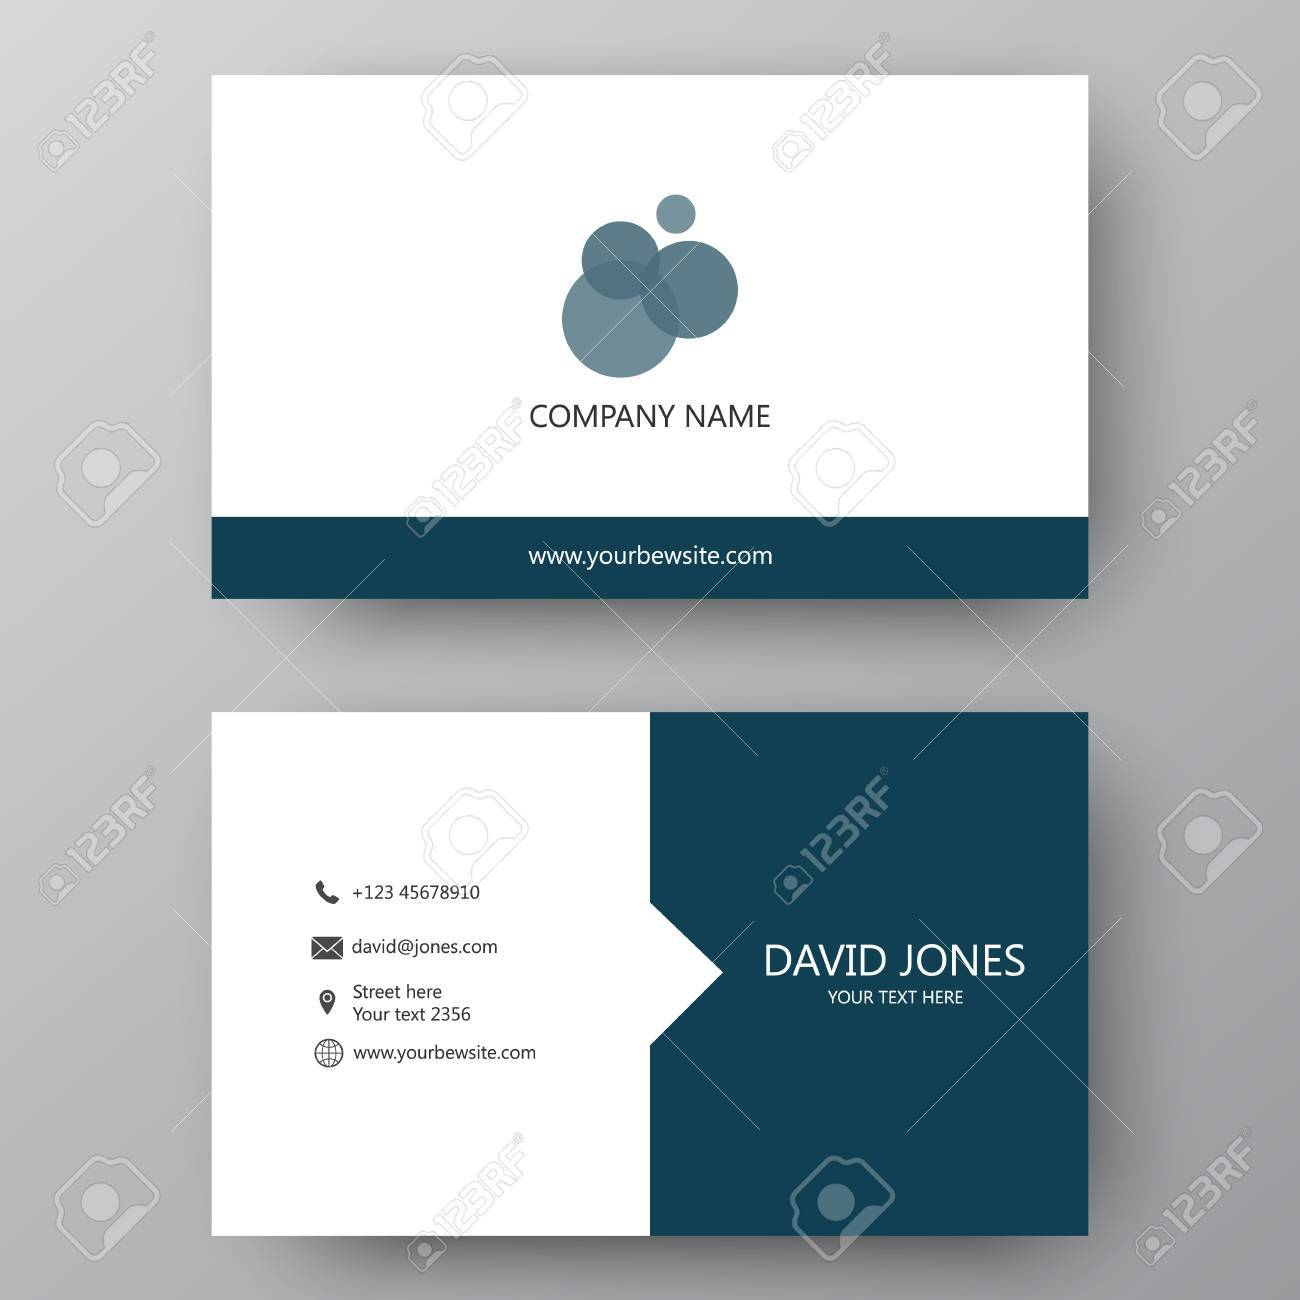 Vector business card template visiting card for business and vector vector business card template visiting card for business and personal use modern presentation card with company logo vector illustration design colourmoves